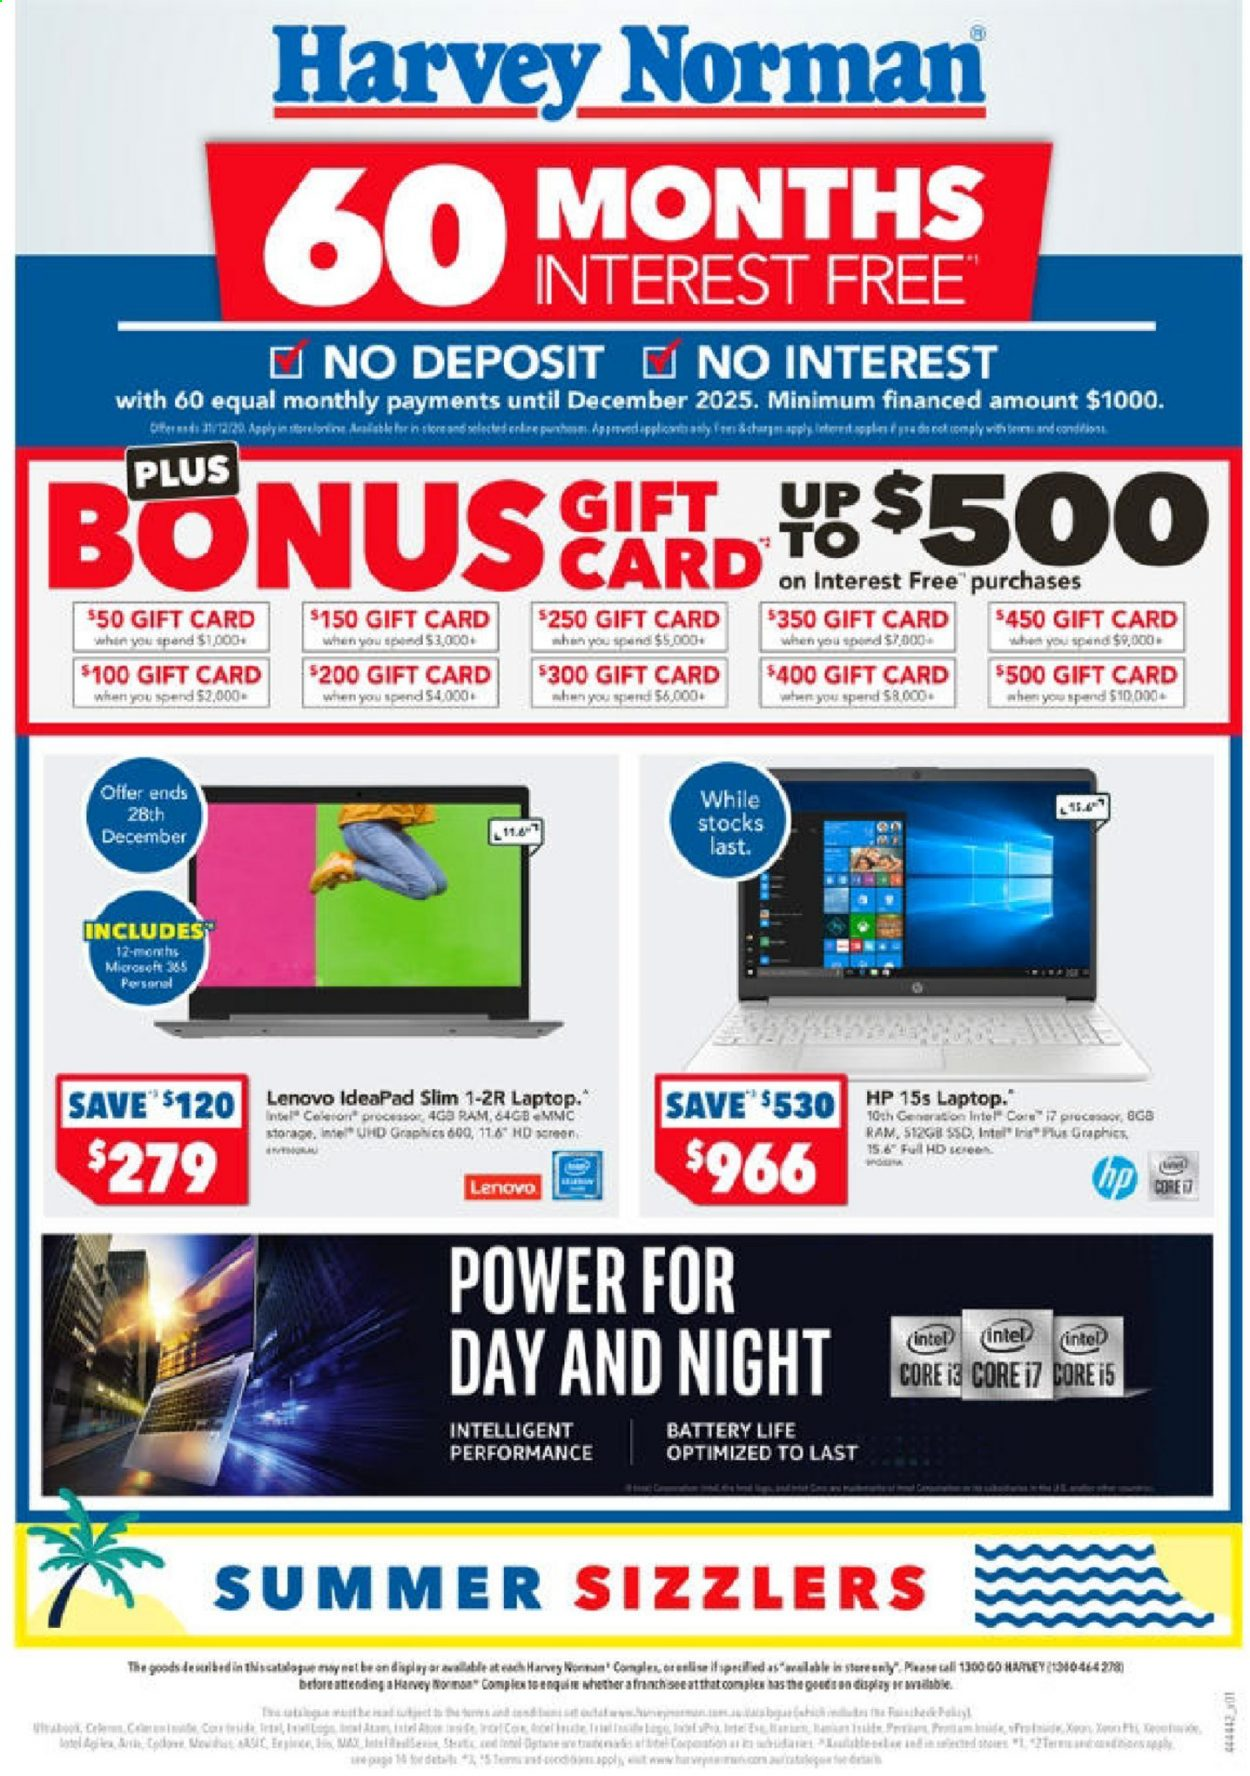 Harvey Norman Catalogue - 24.12.2020 - 4.1.2021 - Sales products - battery, full hd, laptop, Lenovo, tee, HP, Intel, cot, ssd. Page 1.